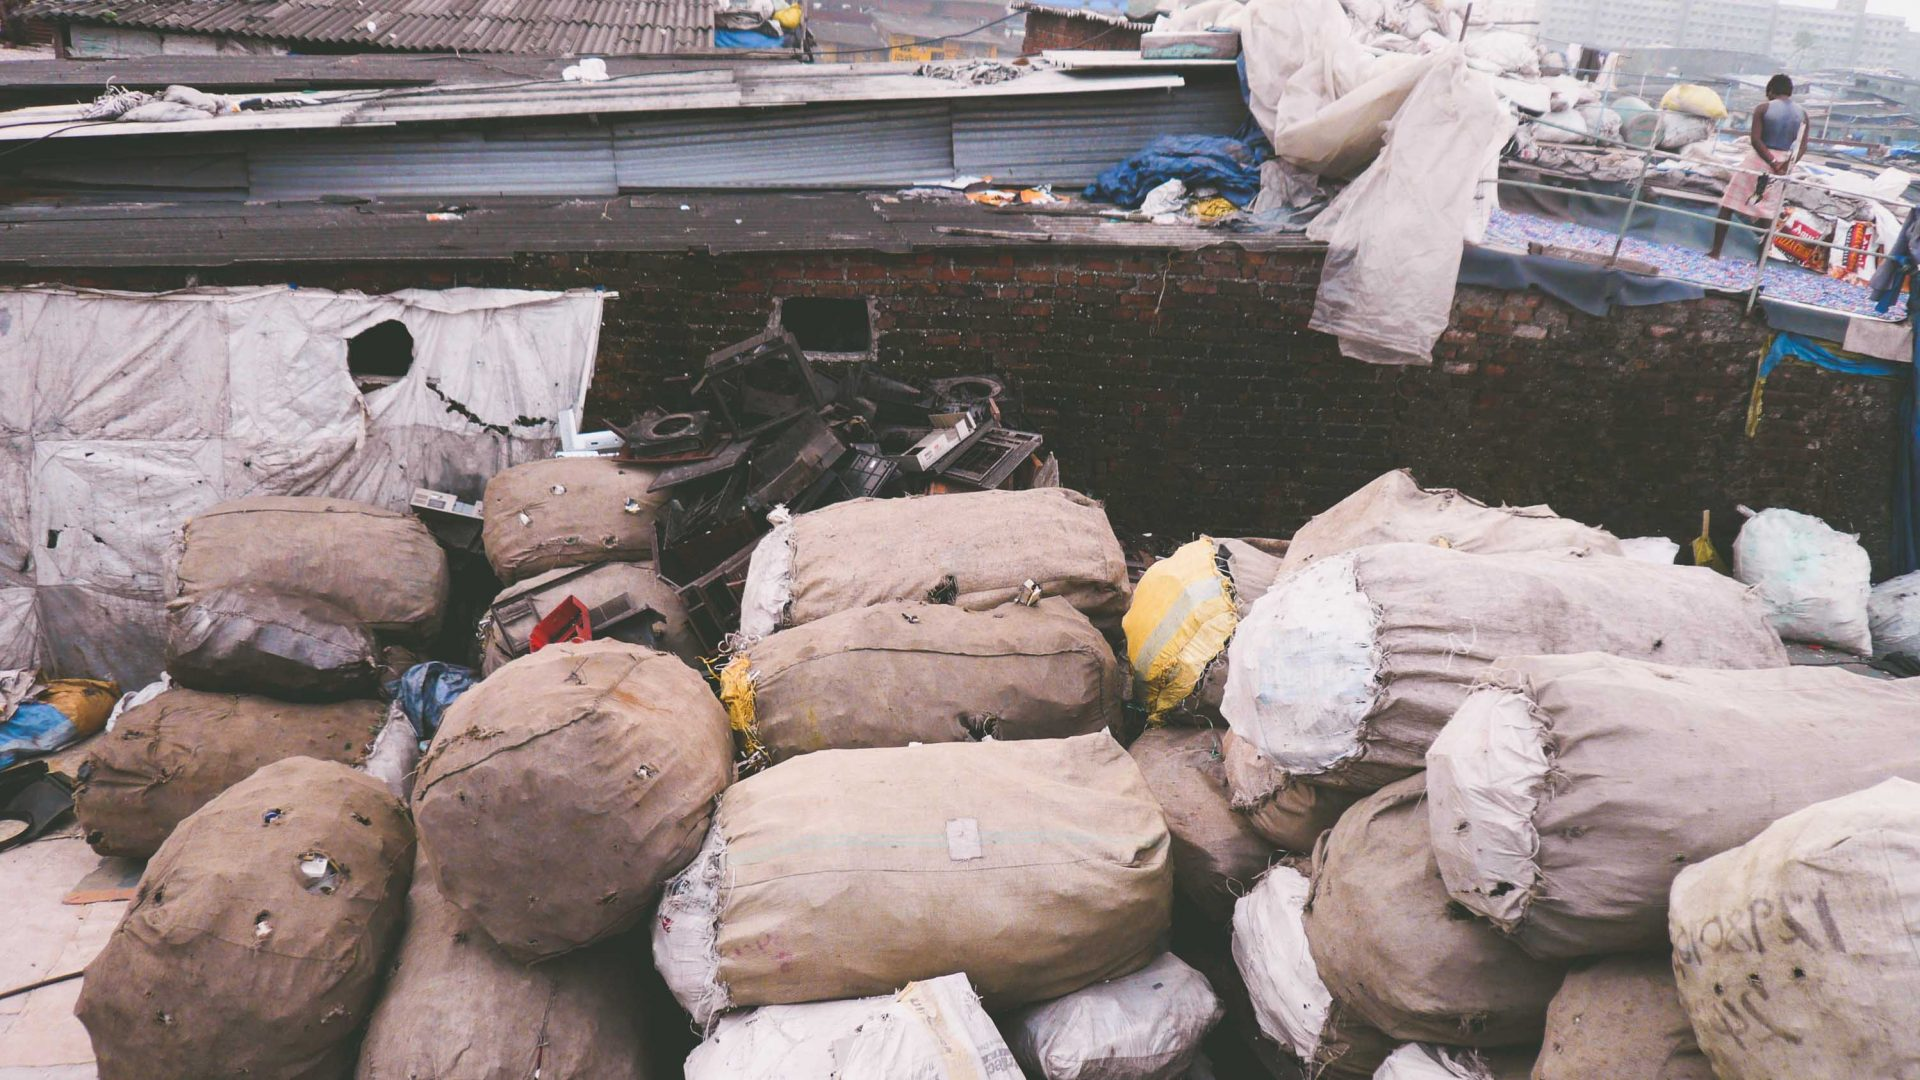 Plastic recycling bundled into bags upon a rooftop in Dharavi slum in Mumbai.